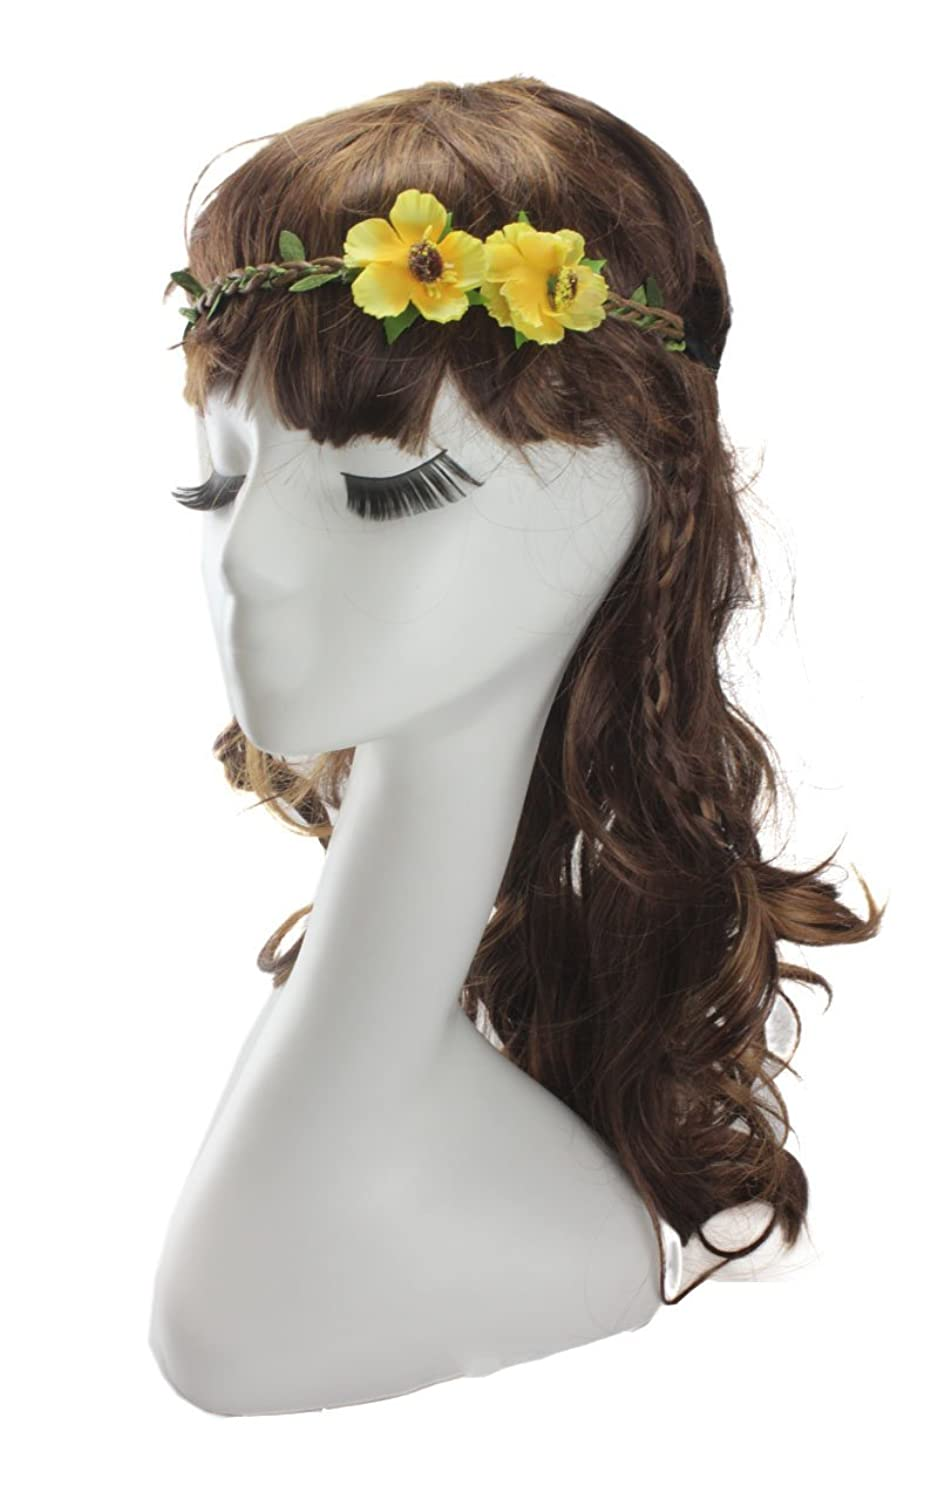 DreamLily Women's 2 Roses Wreath Headband Floral Party Crown HairWear BC03